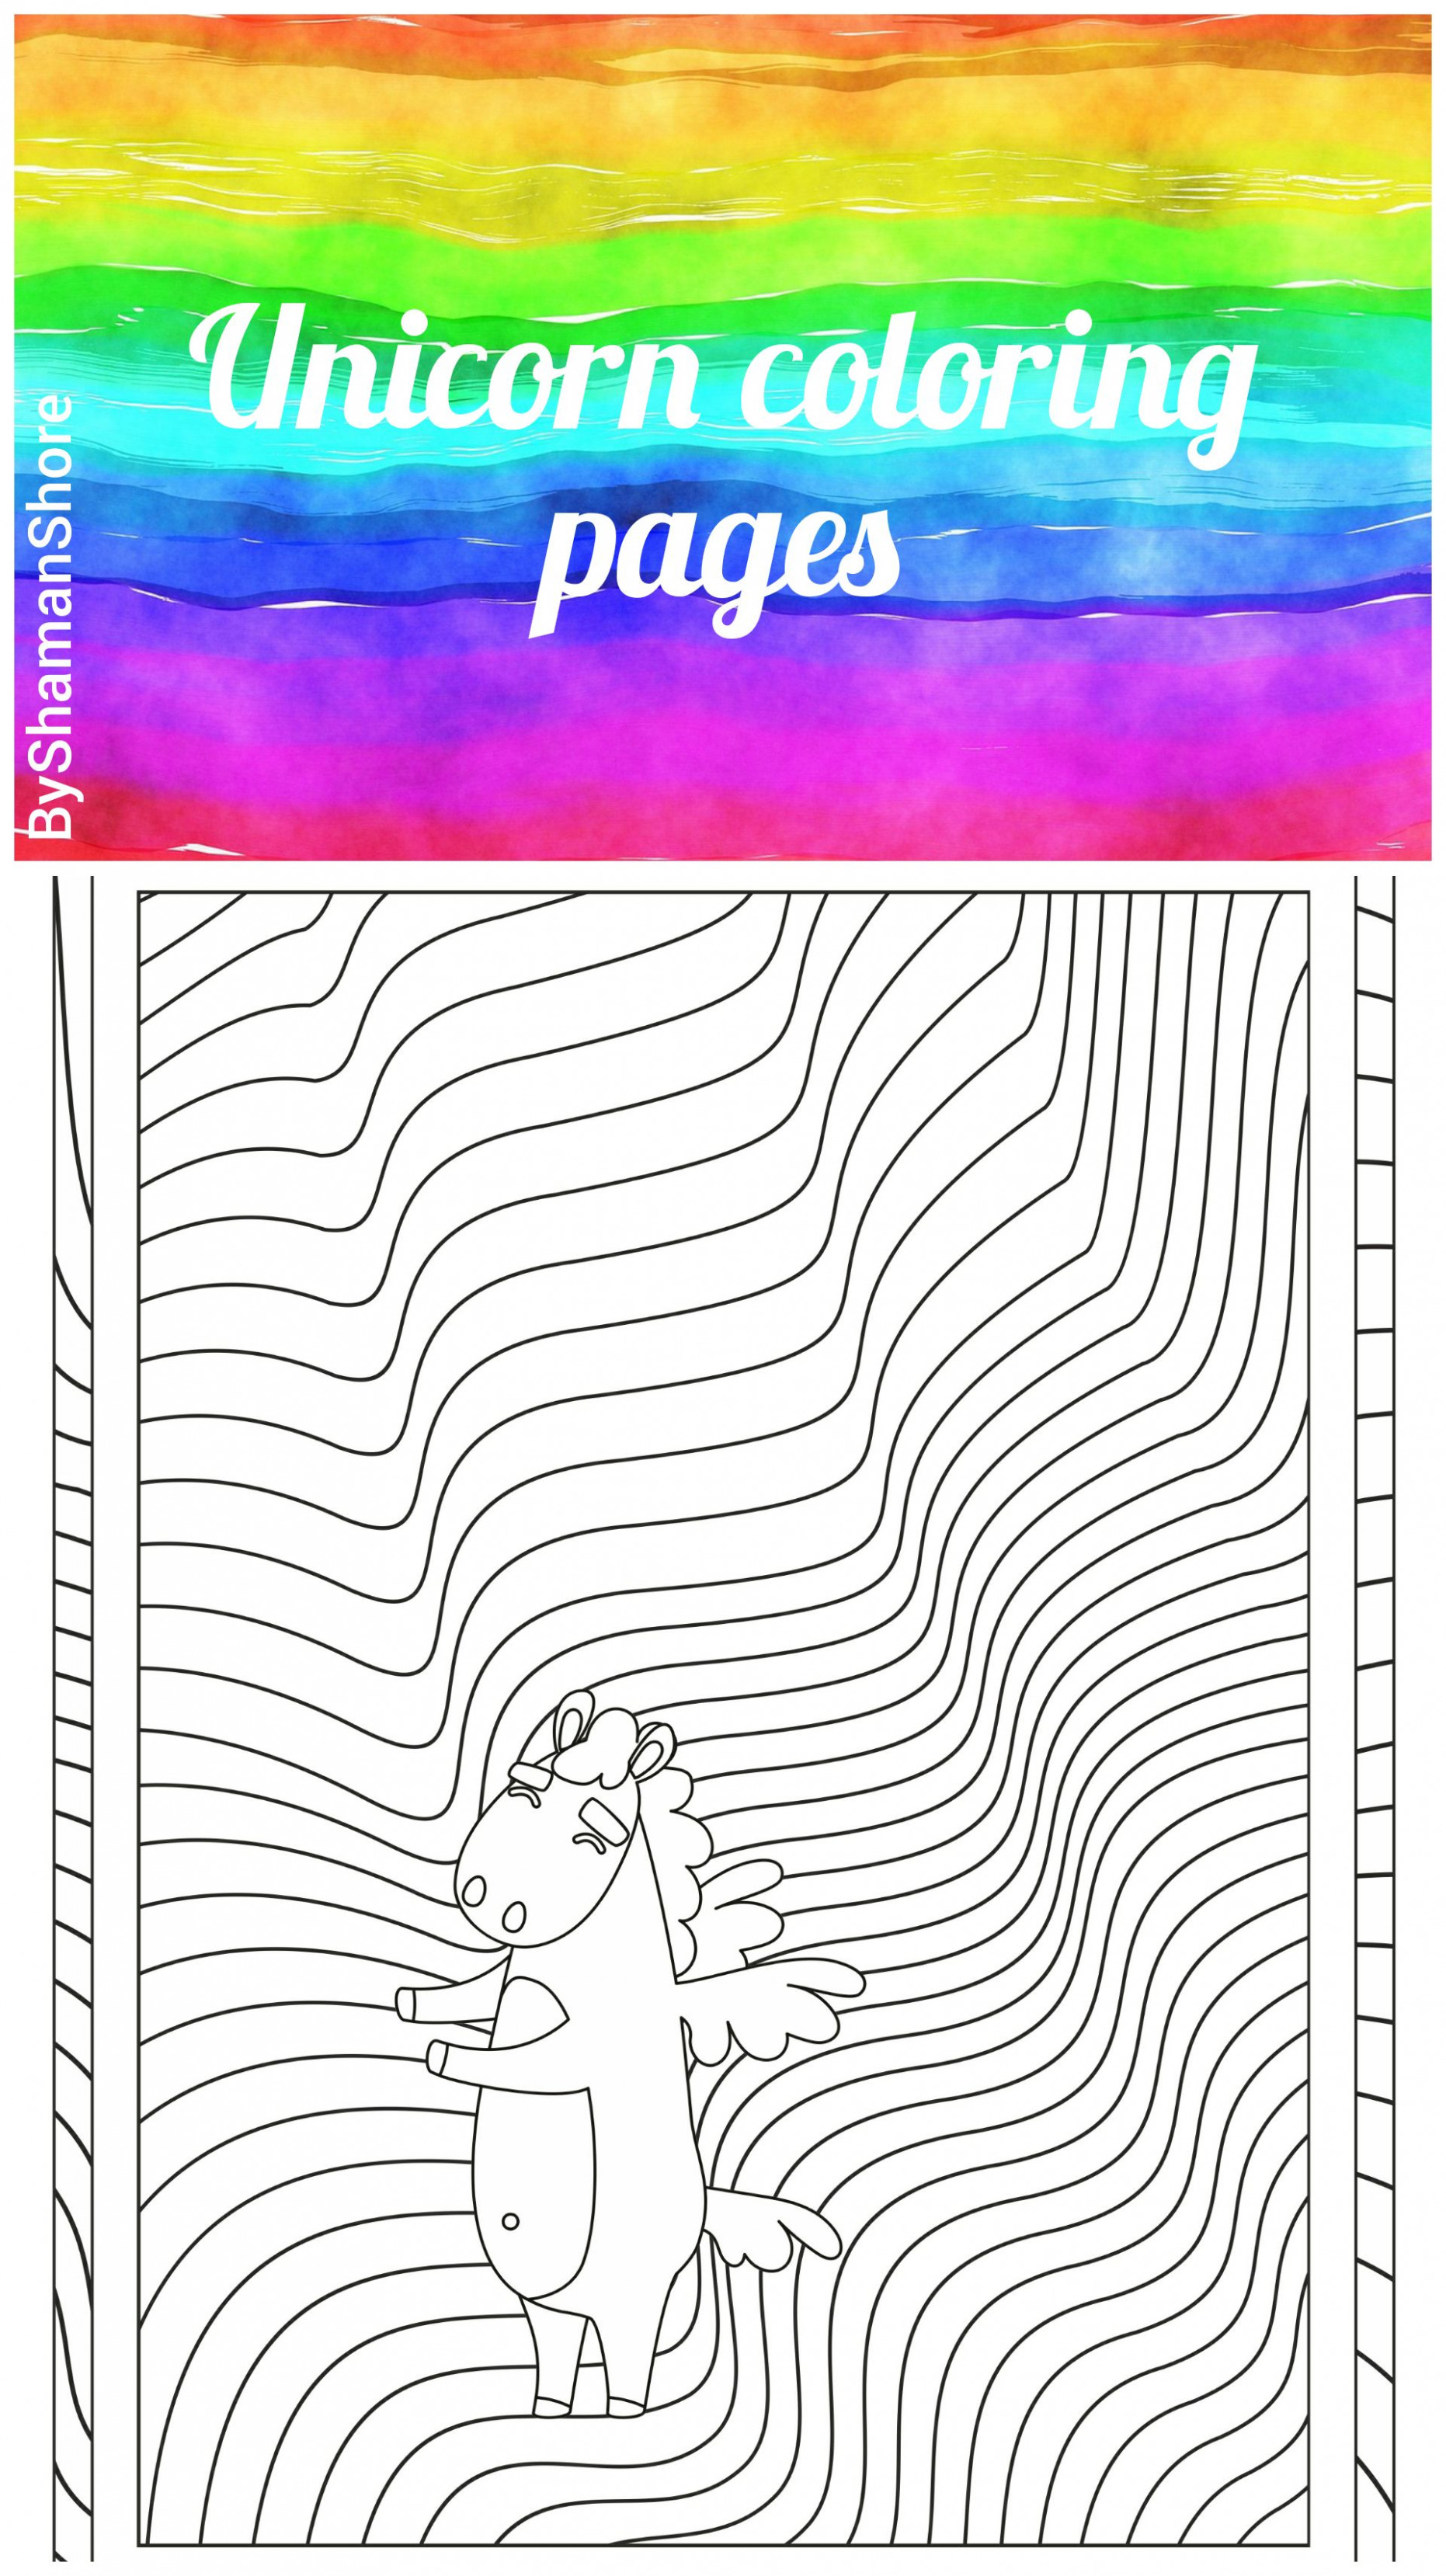 12 Unicorn Coloring Pages Printable, Digital Coloring Book Pdf ...